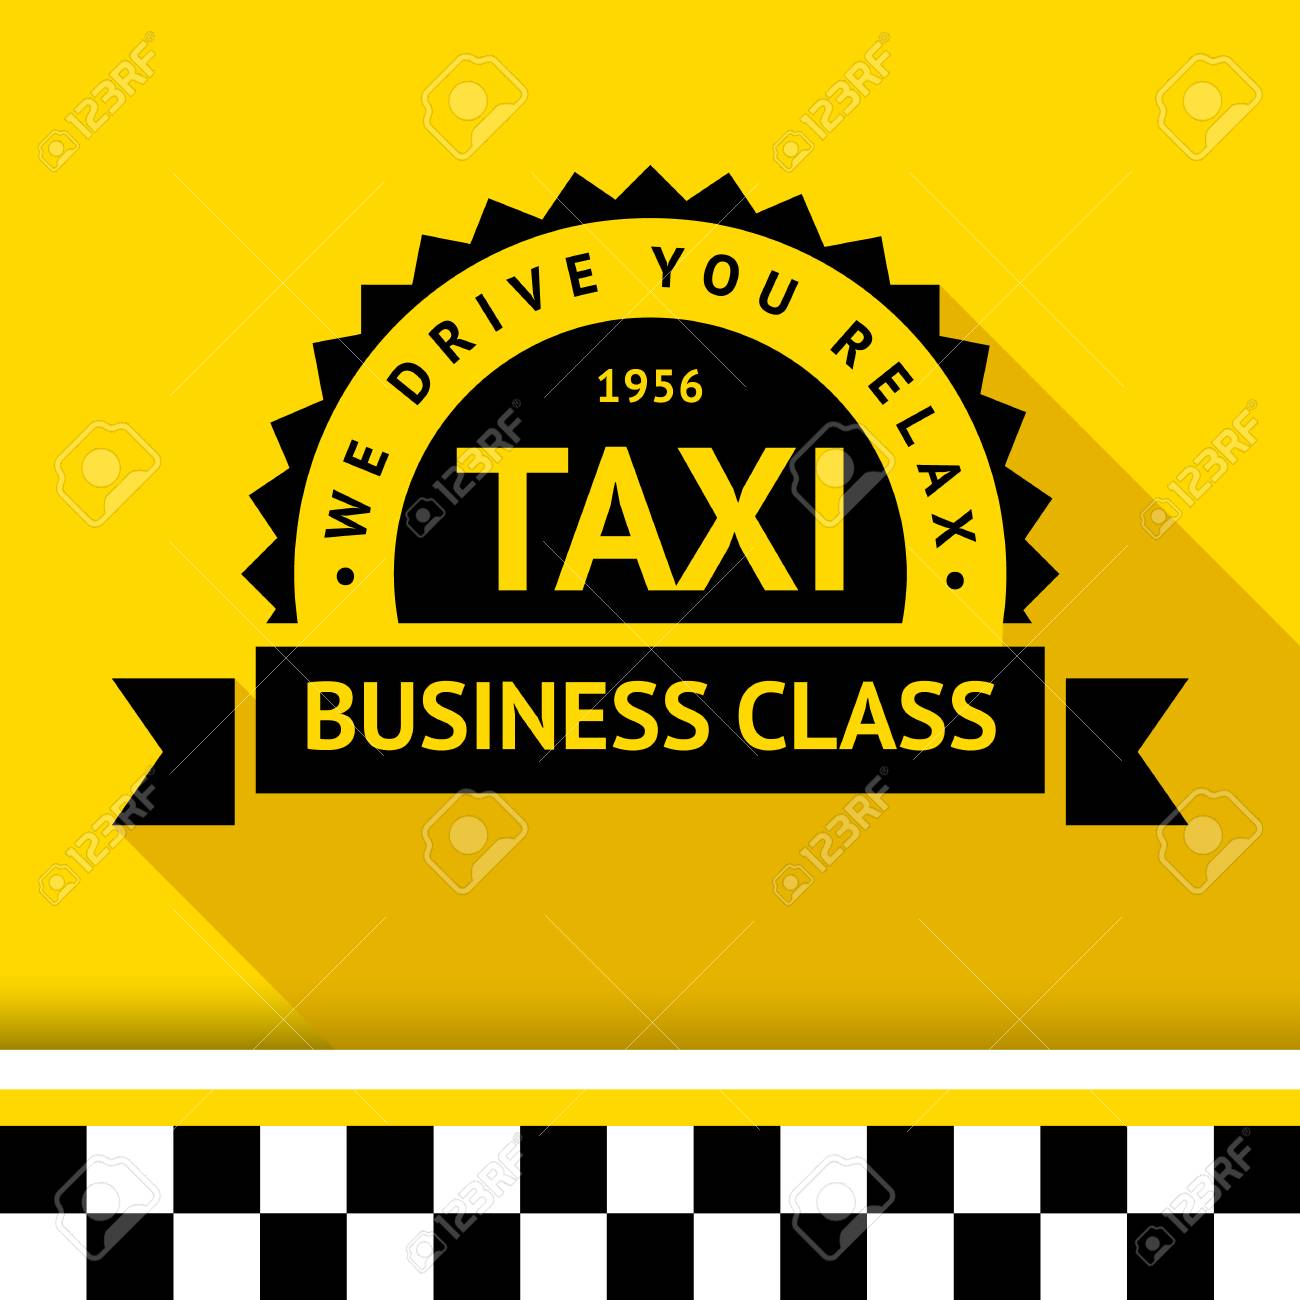 Taxi badge with shadow - 09 illustration Stock Vector - 26705114